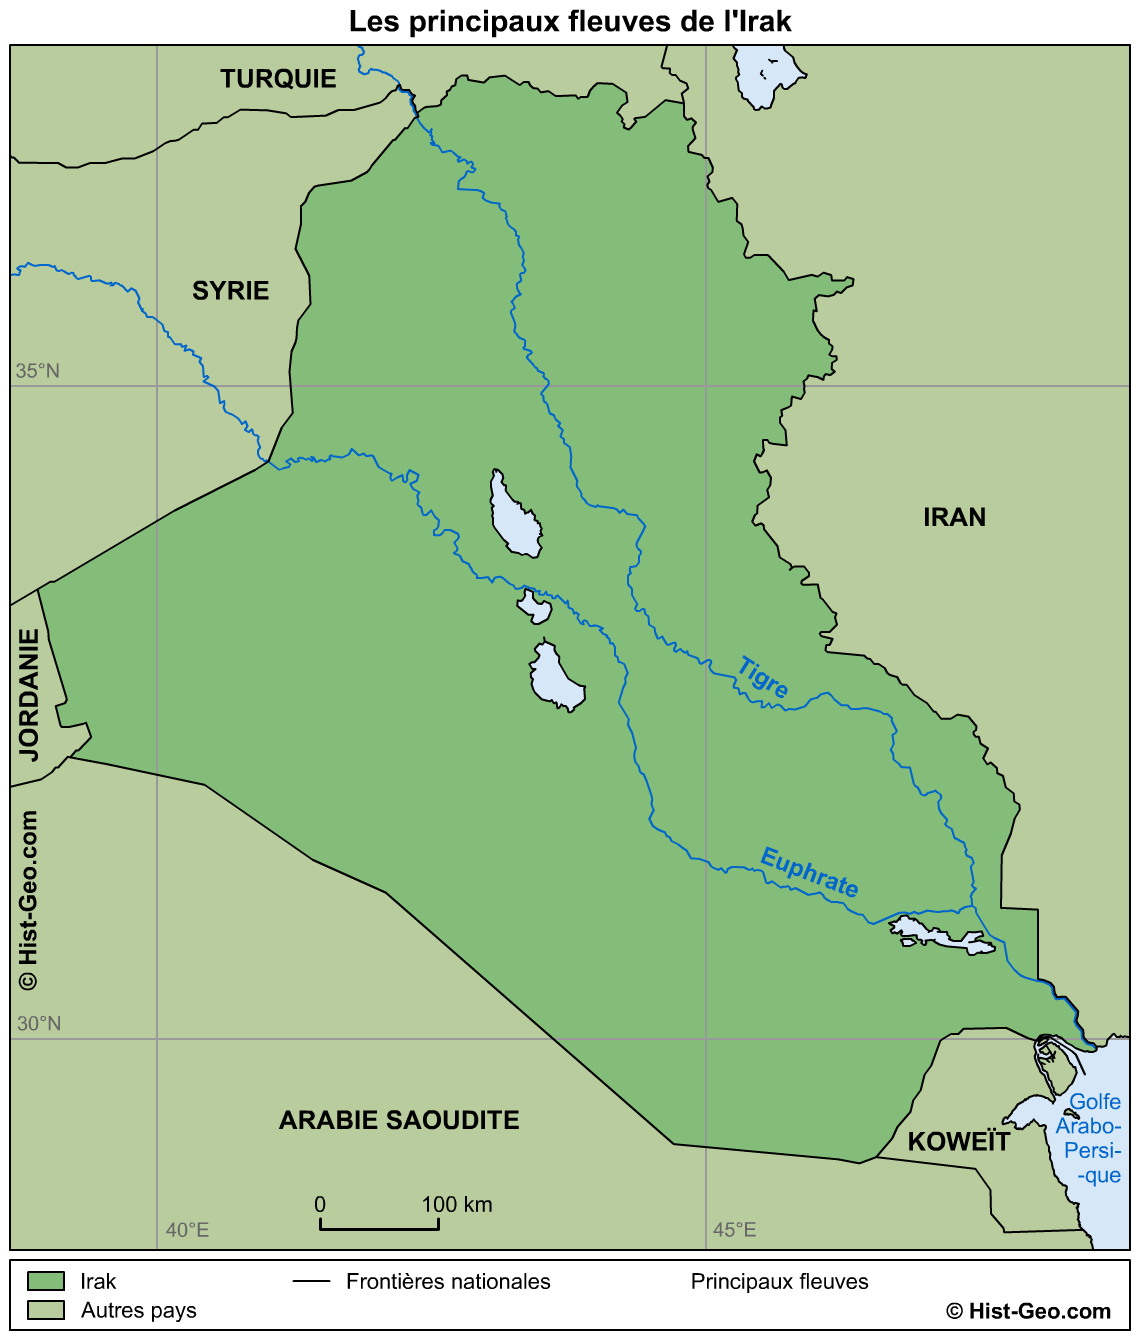 tigre et euphrate carte Irak   fleuves Tigre, Euphrate et Chatt el Arab • Map